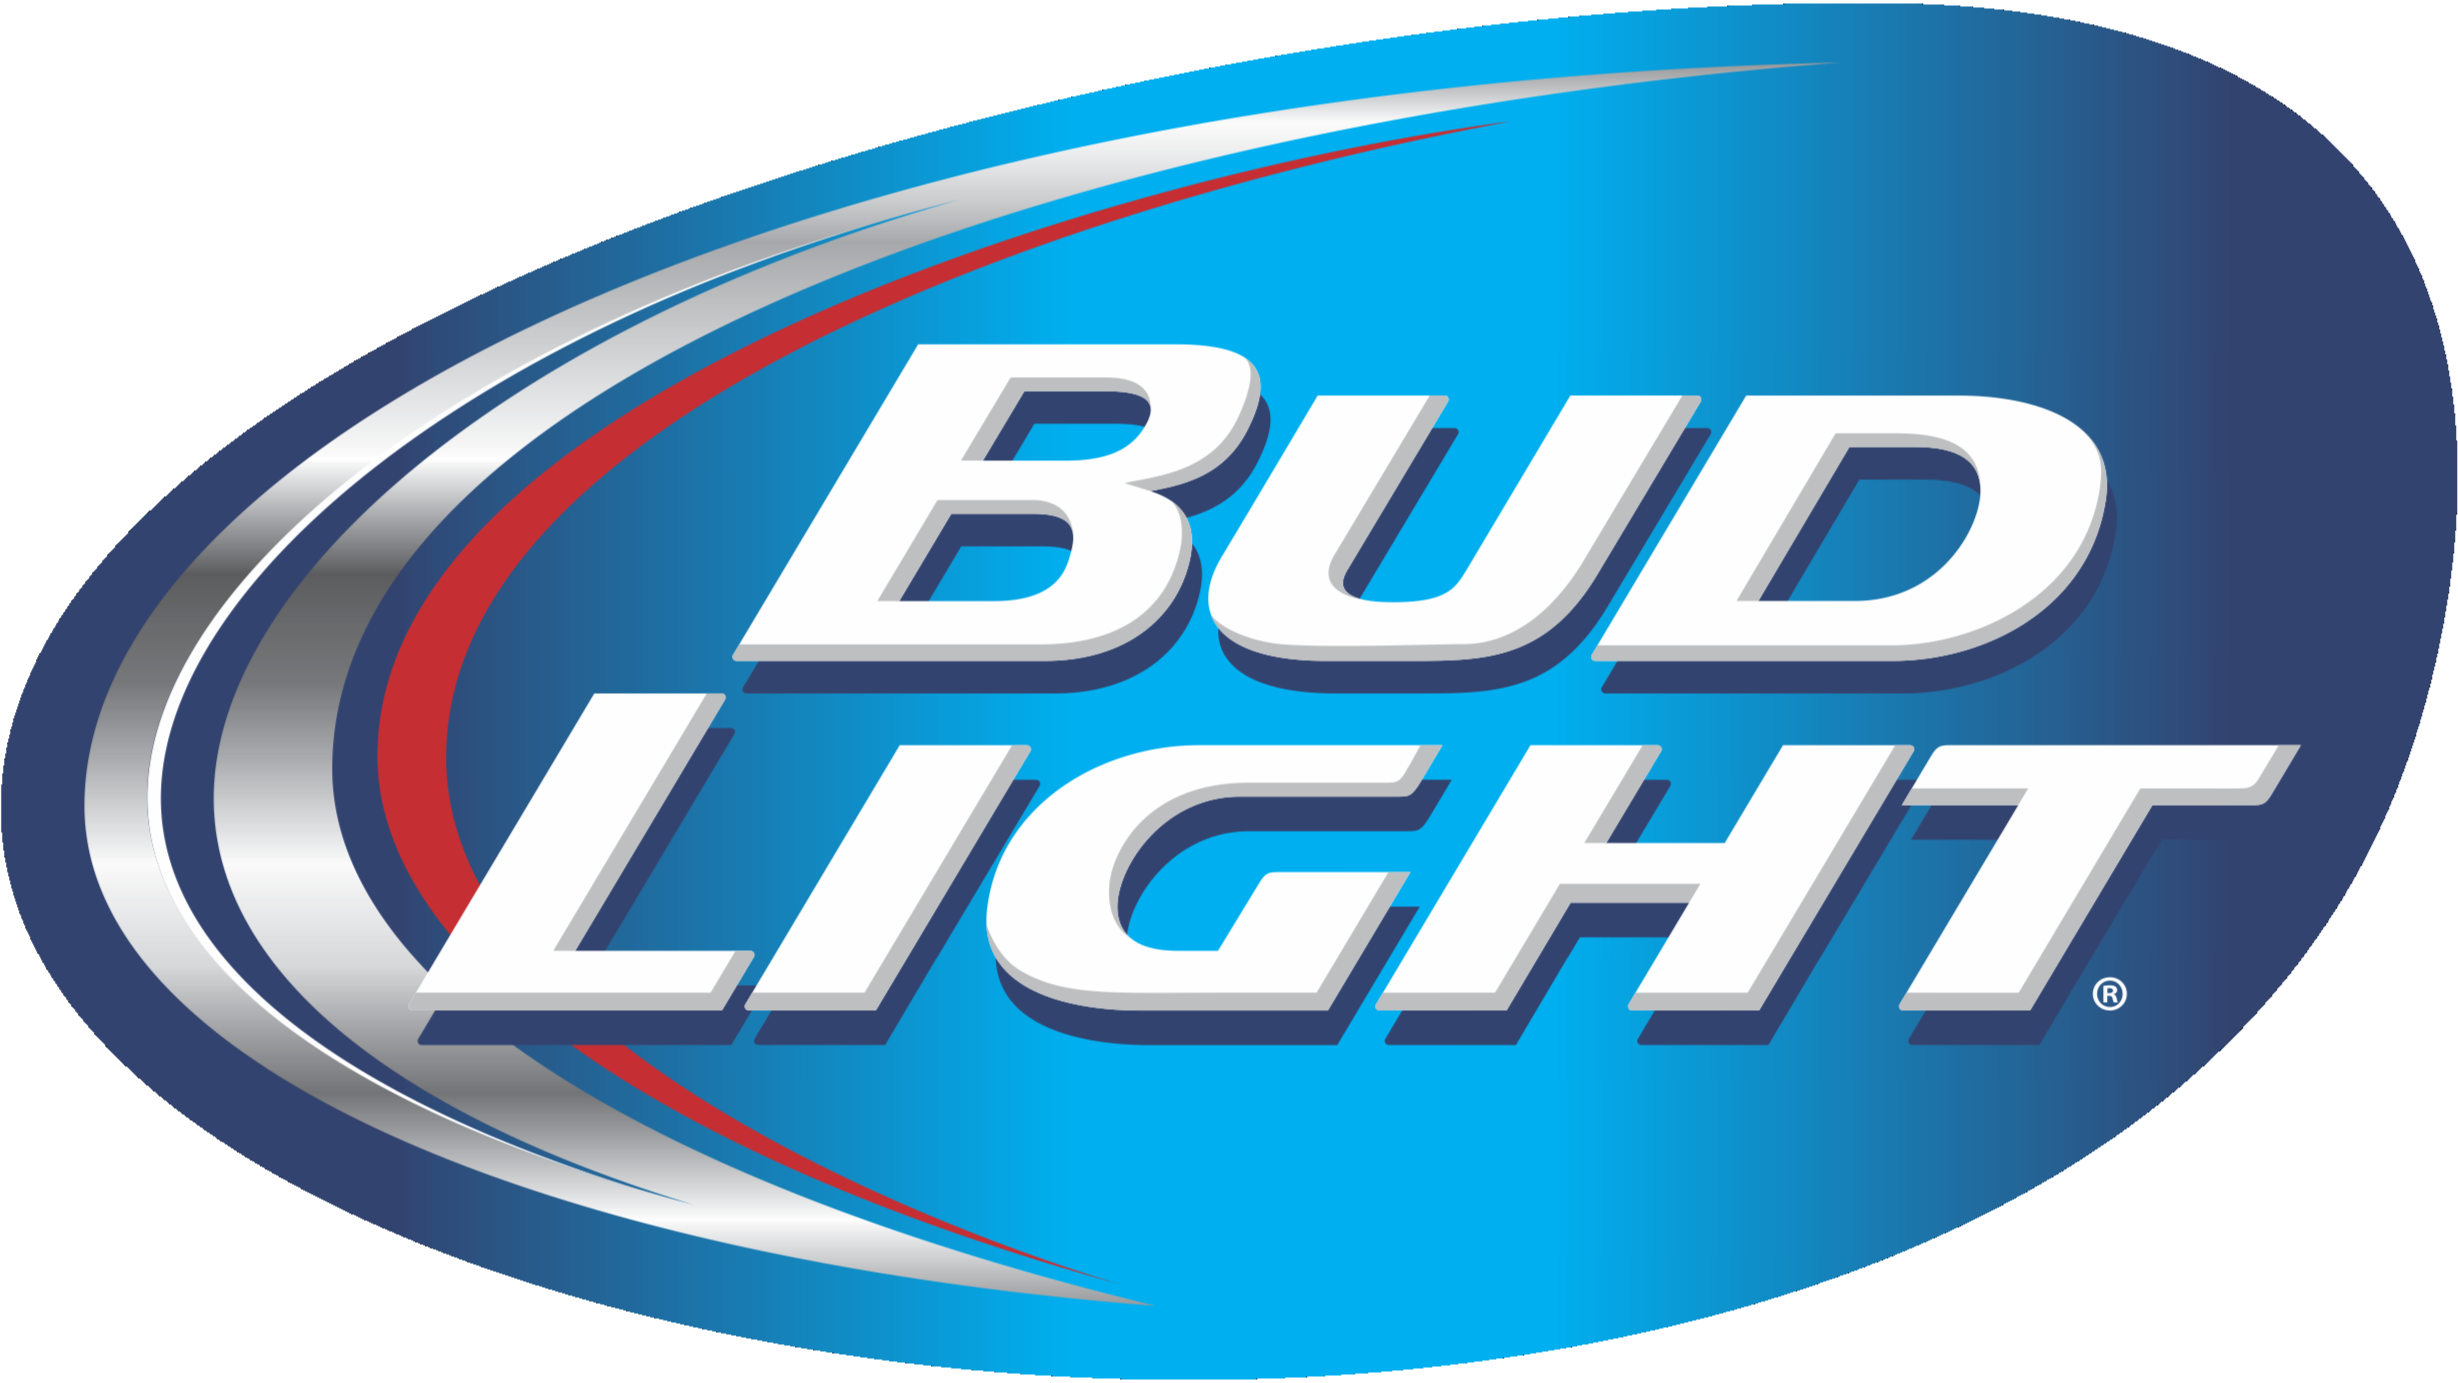 Based in St. Louis, AnheuserBusch is the leading American